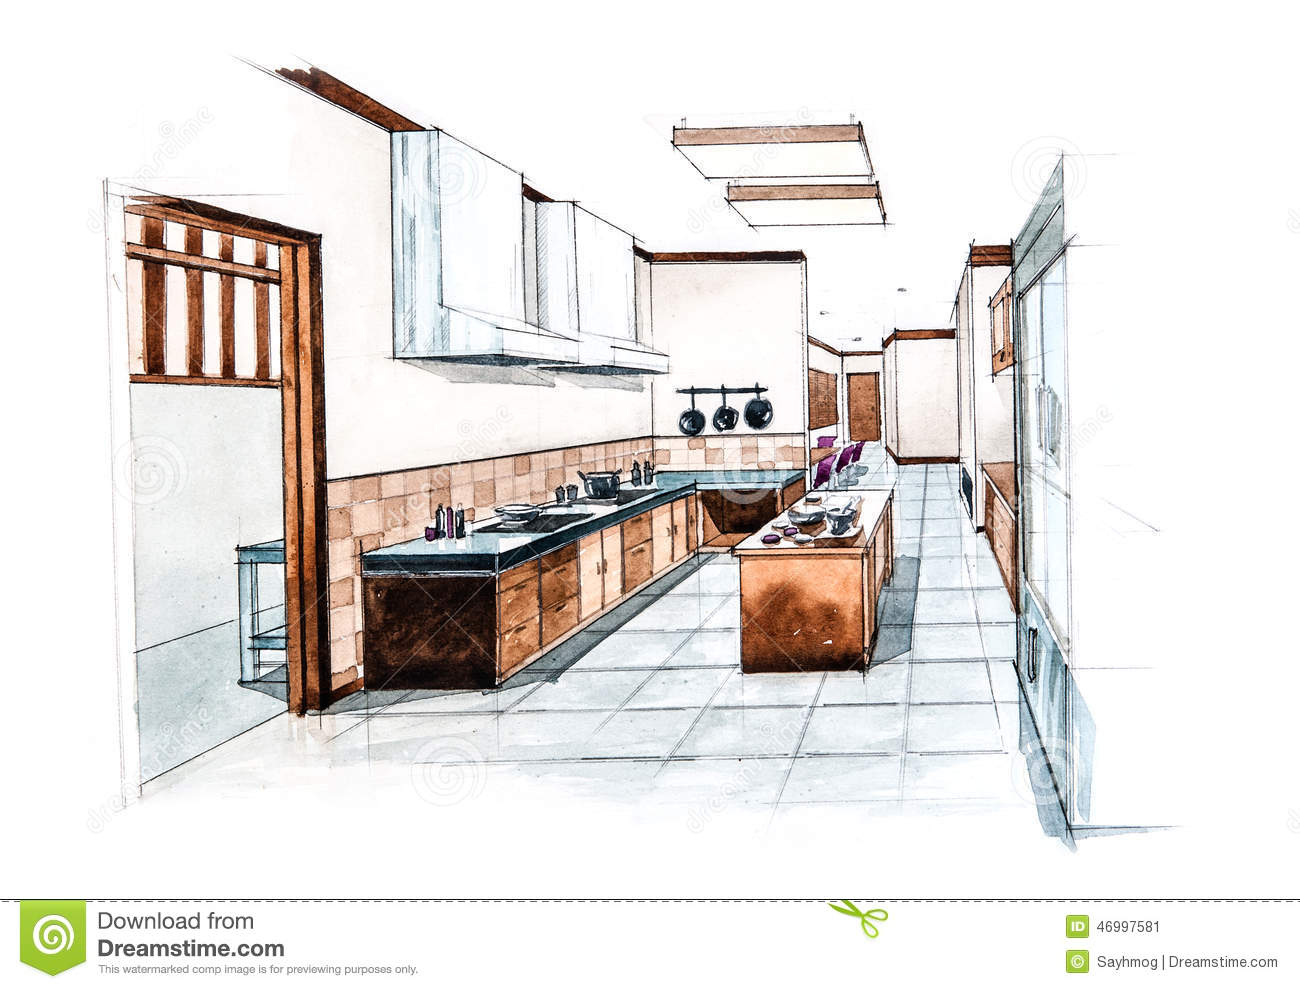 #82A229 Stock Illustration: Kitchen room for restaurant design of watercolor  1300x989 px Projetos De Cozinhas De Restaurantes #509 imagens